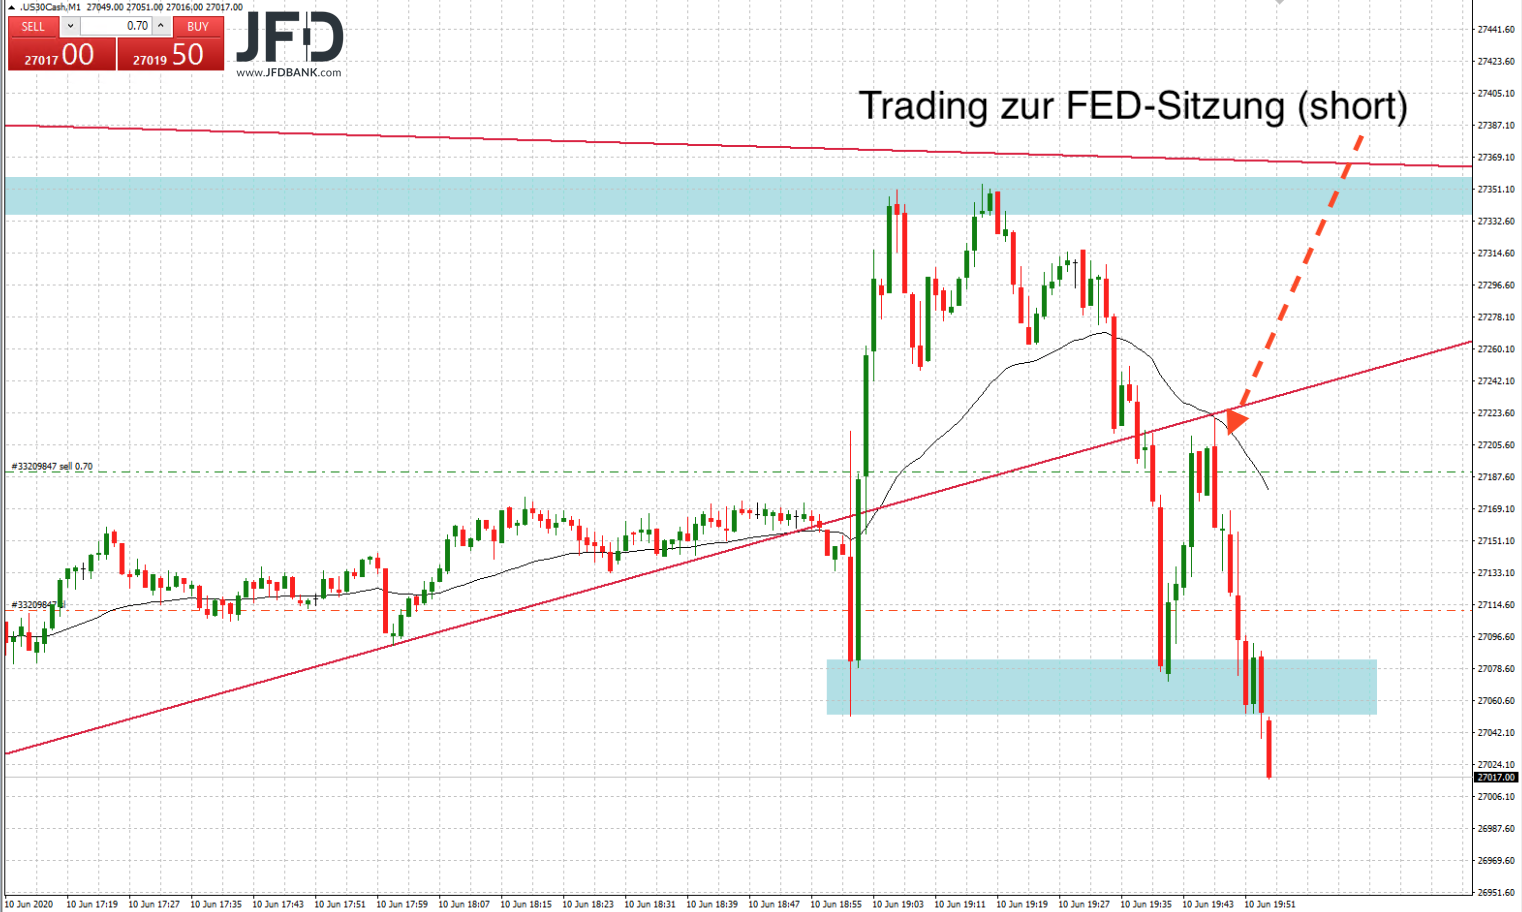 FED-Trade im Dow Jones